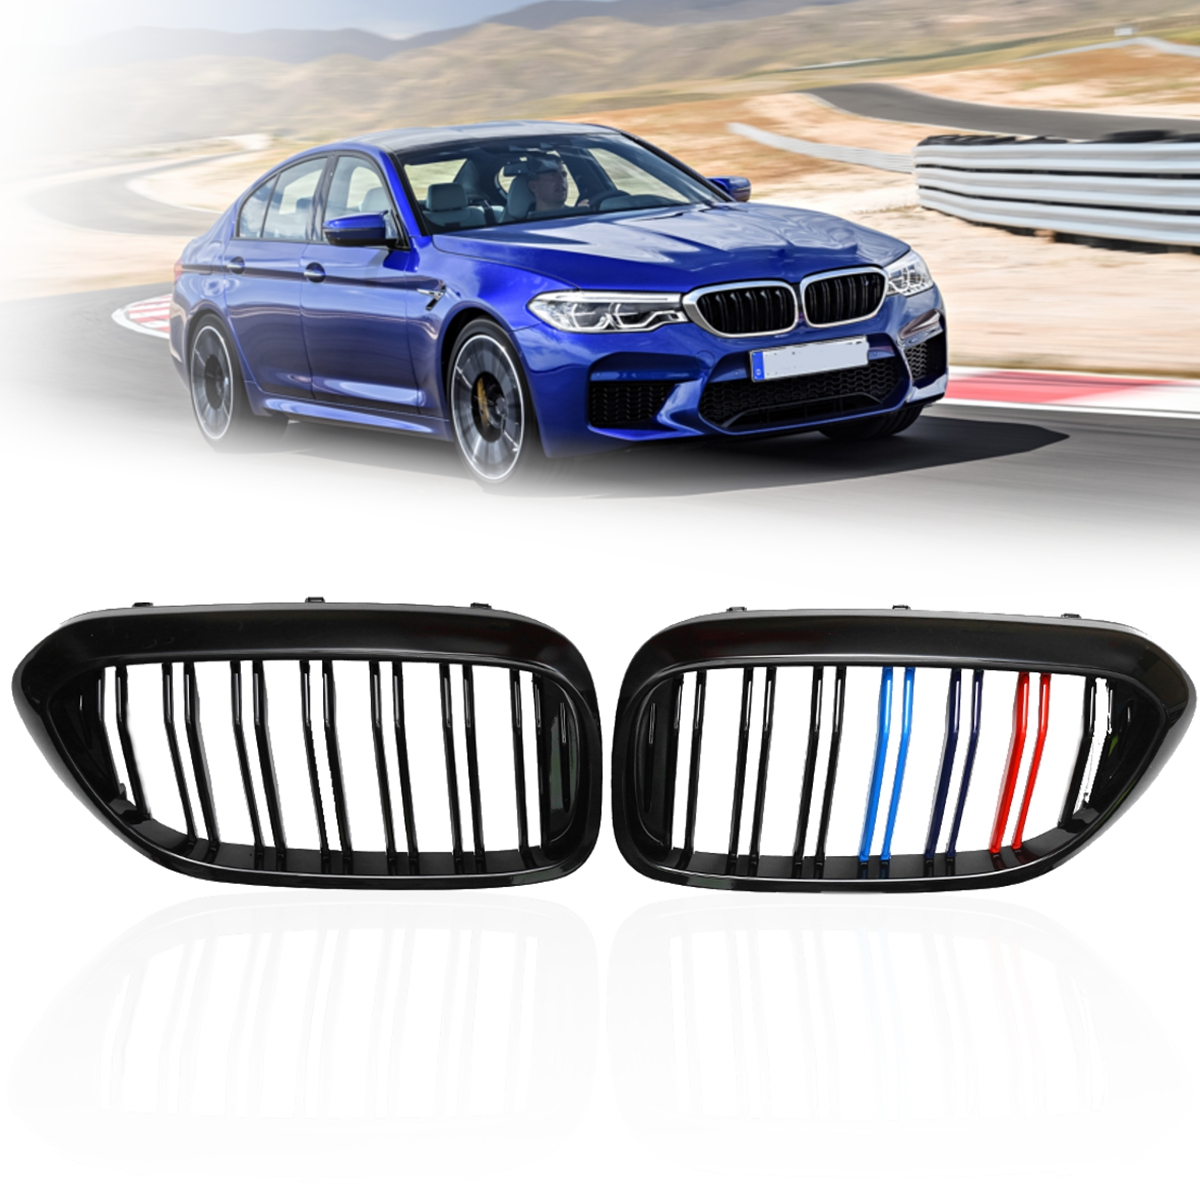 все цены на Pair Gloss Black M Color/Gloss Black Front Dual Slats Grilles Car styling Front Racing Grille For BMW 5 Series G30 G38 2017 онлайн